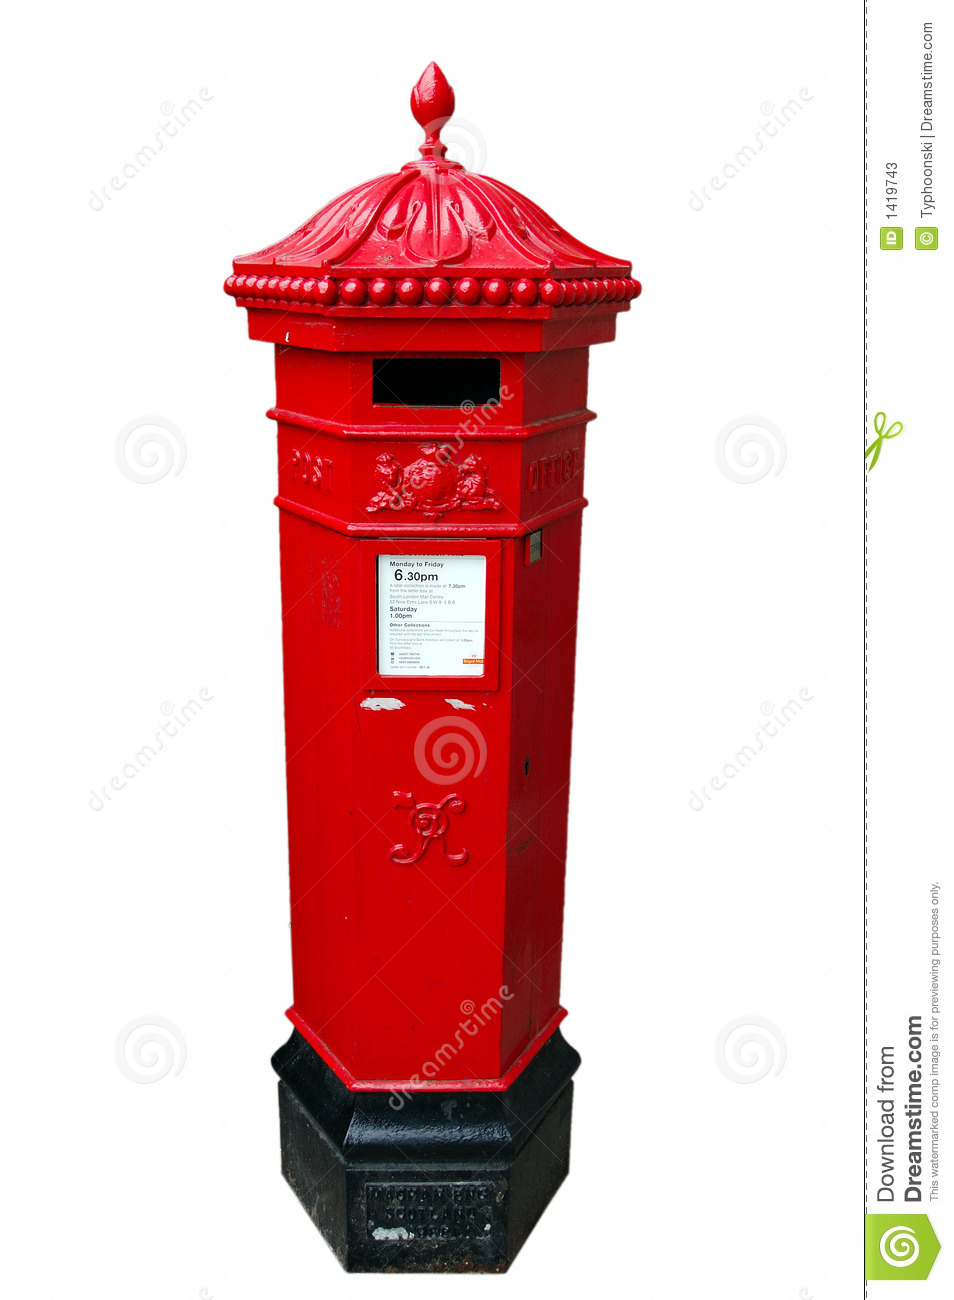 A British, Royal Mail Postbox, Isolated Stock Photos.